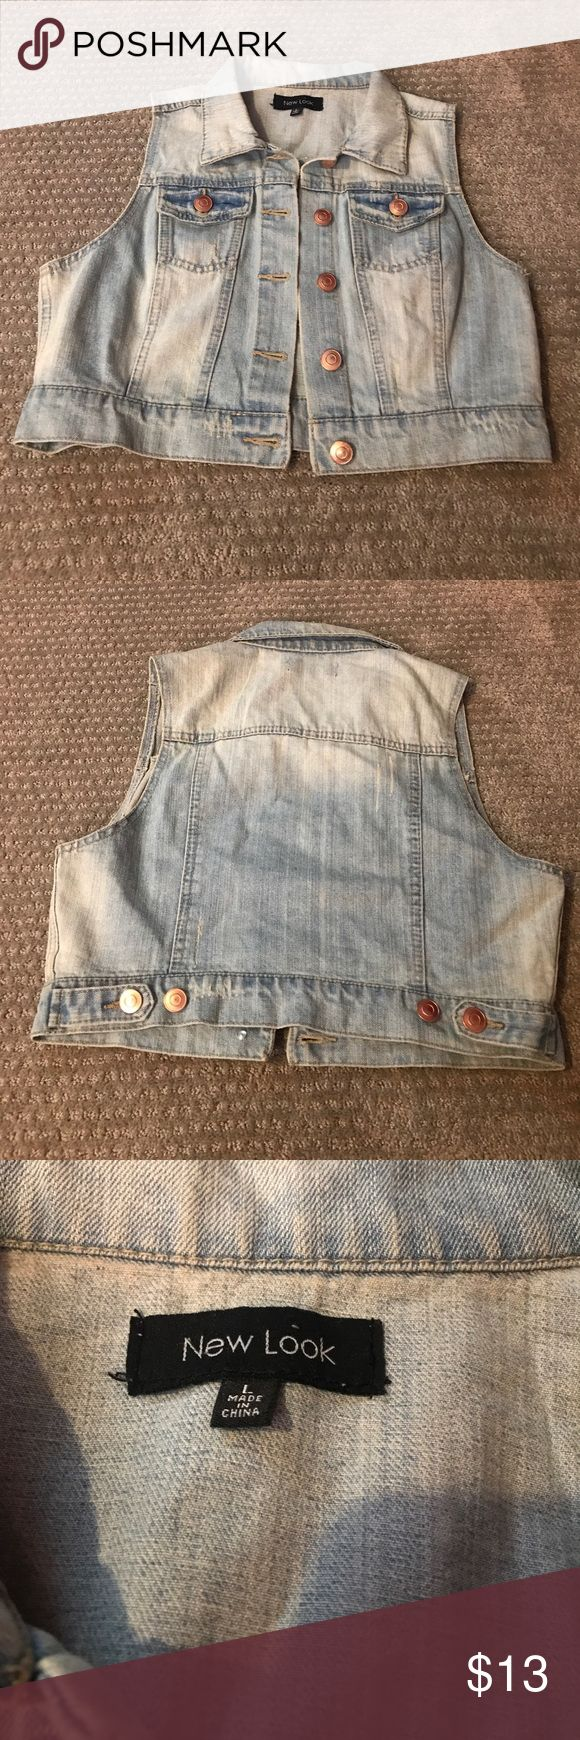 Sleeveless Jean jacket light wash Brand is New Look. Size large but fits a size down. Light wash with etchings is beautiful on this jacket! Perfect condition. Buttons are copper color. New Look Jackets & Coats Jean Jackets